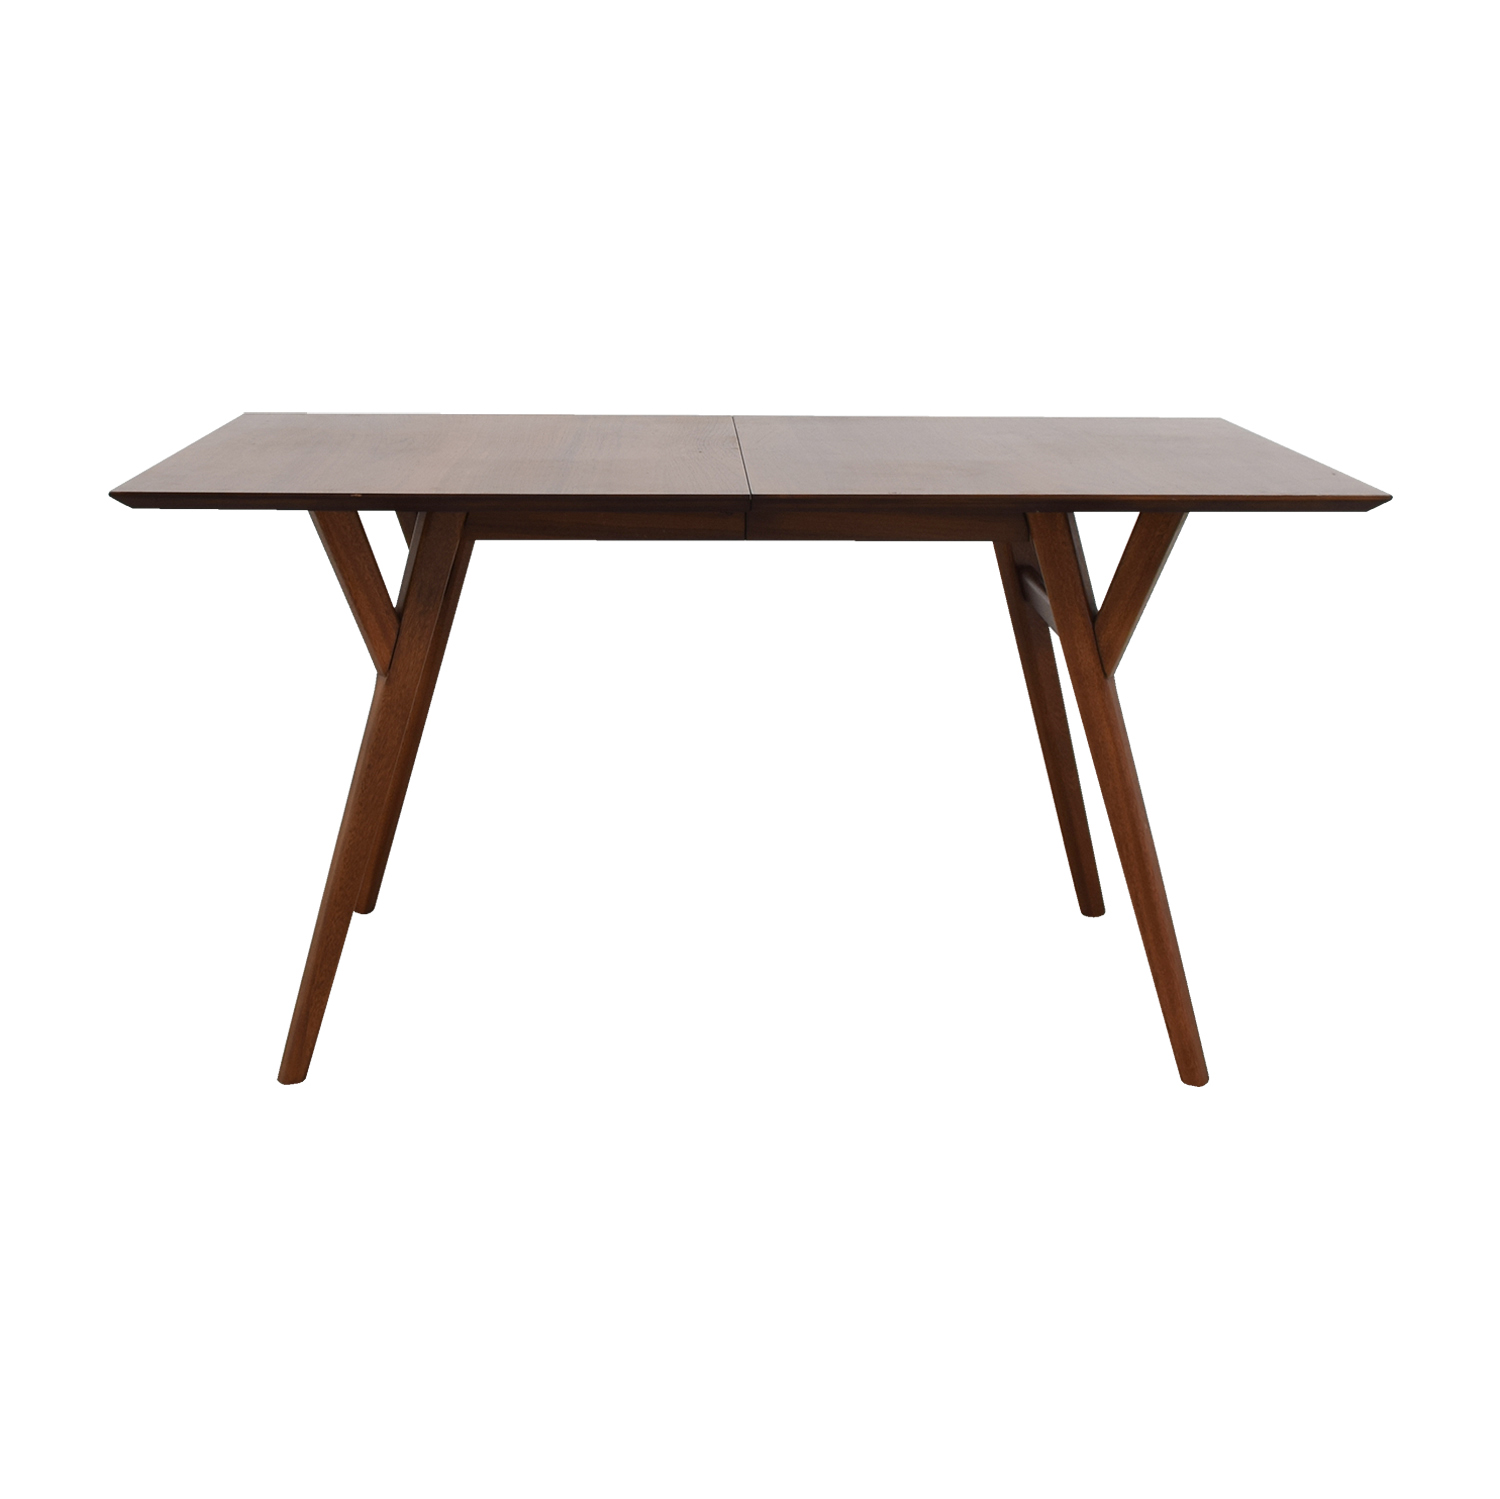 OFF West Elm West Elm MidCentury Walnut Expandable Dining - West elm jensen dining table